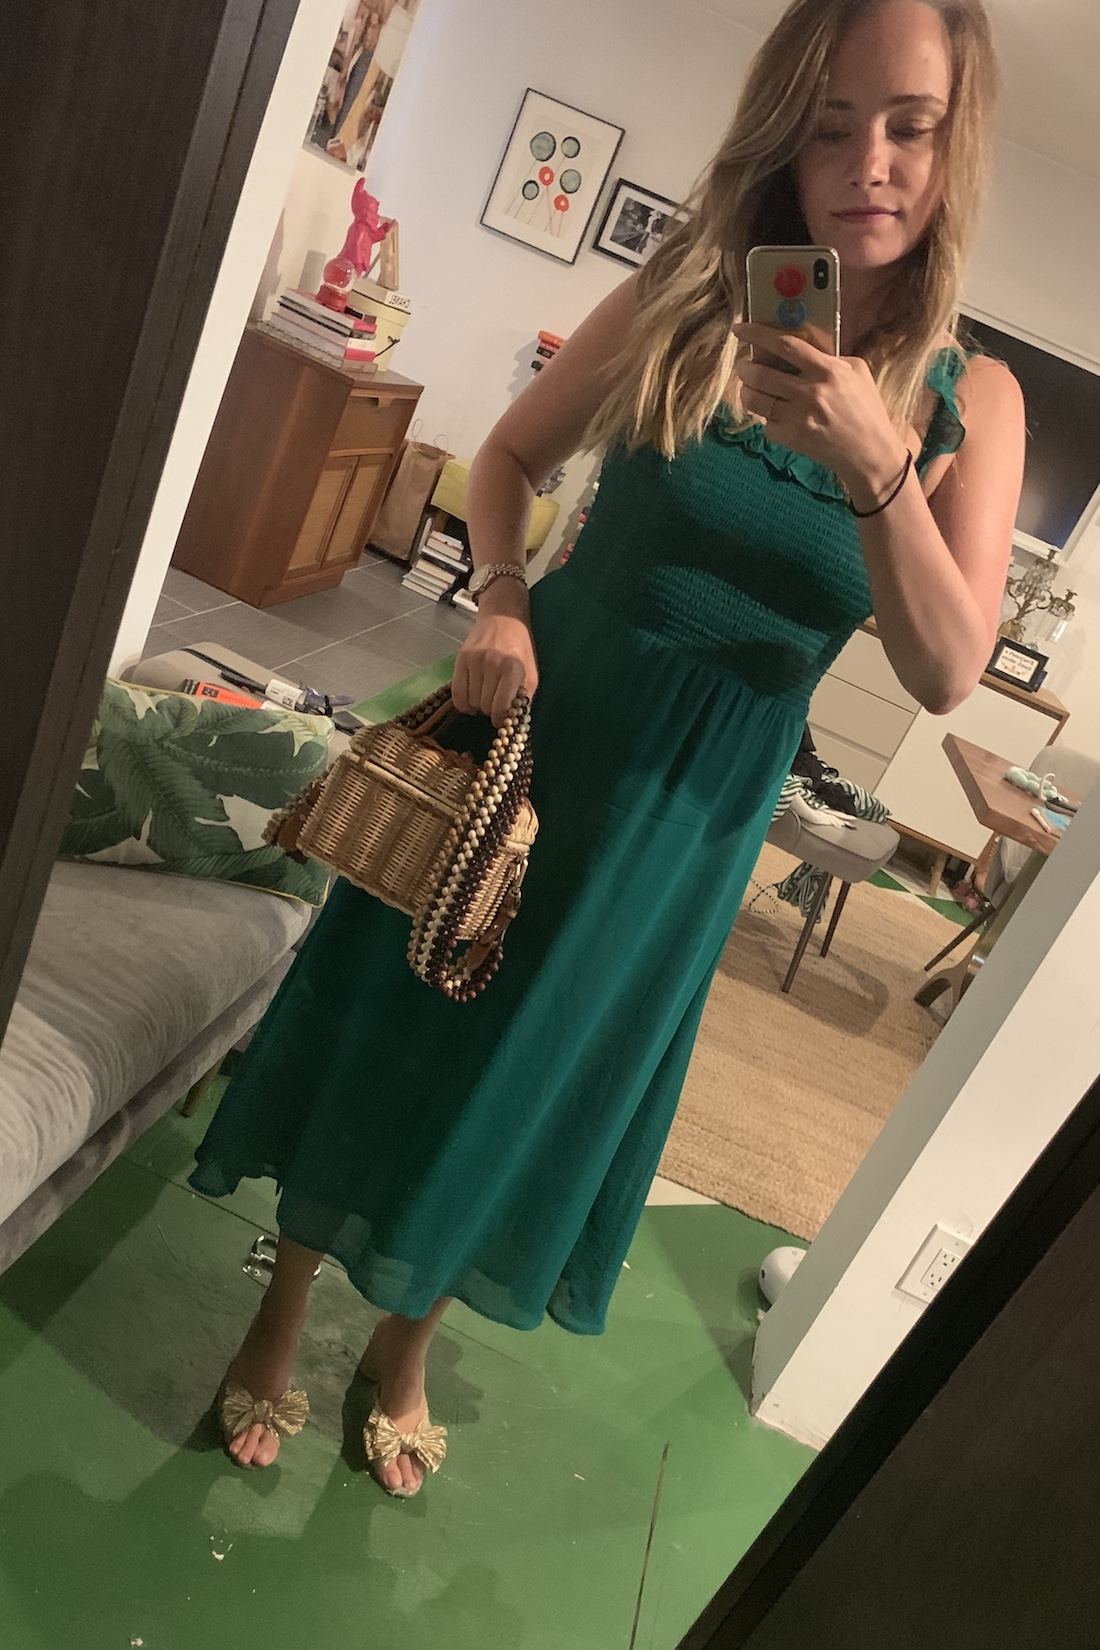 A green dress and structured bag